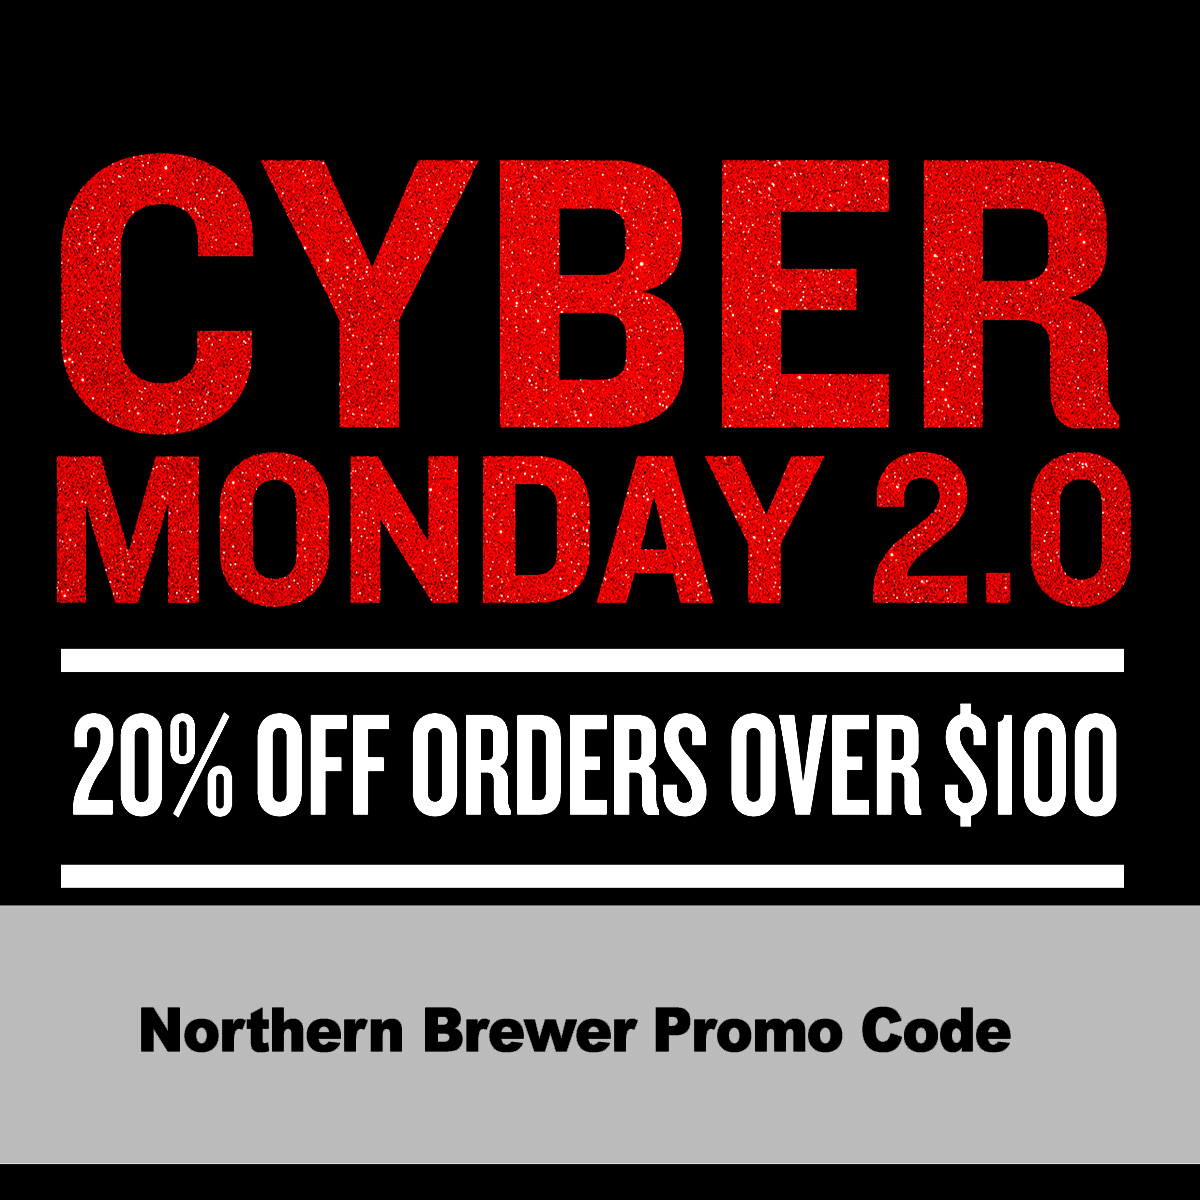 NorthernBrewer.com Cyber Monday 2 Promo Code